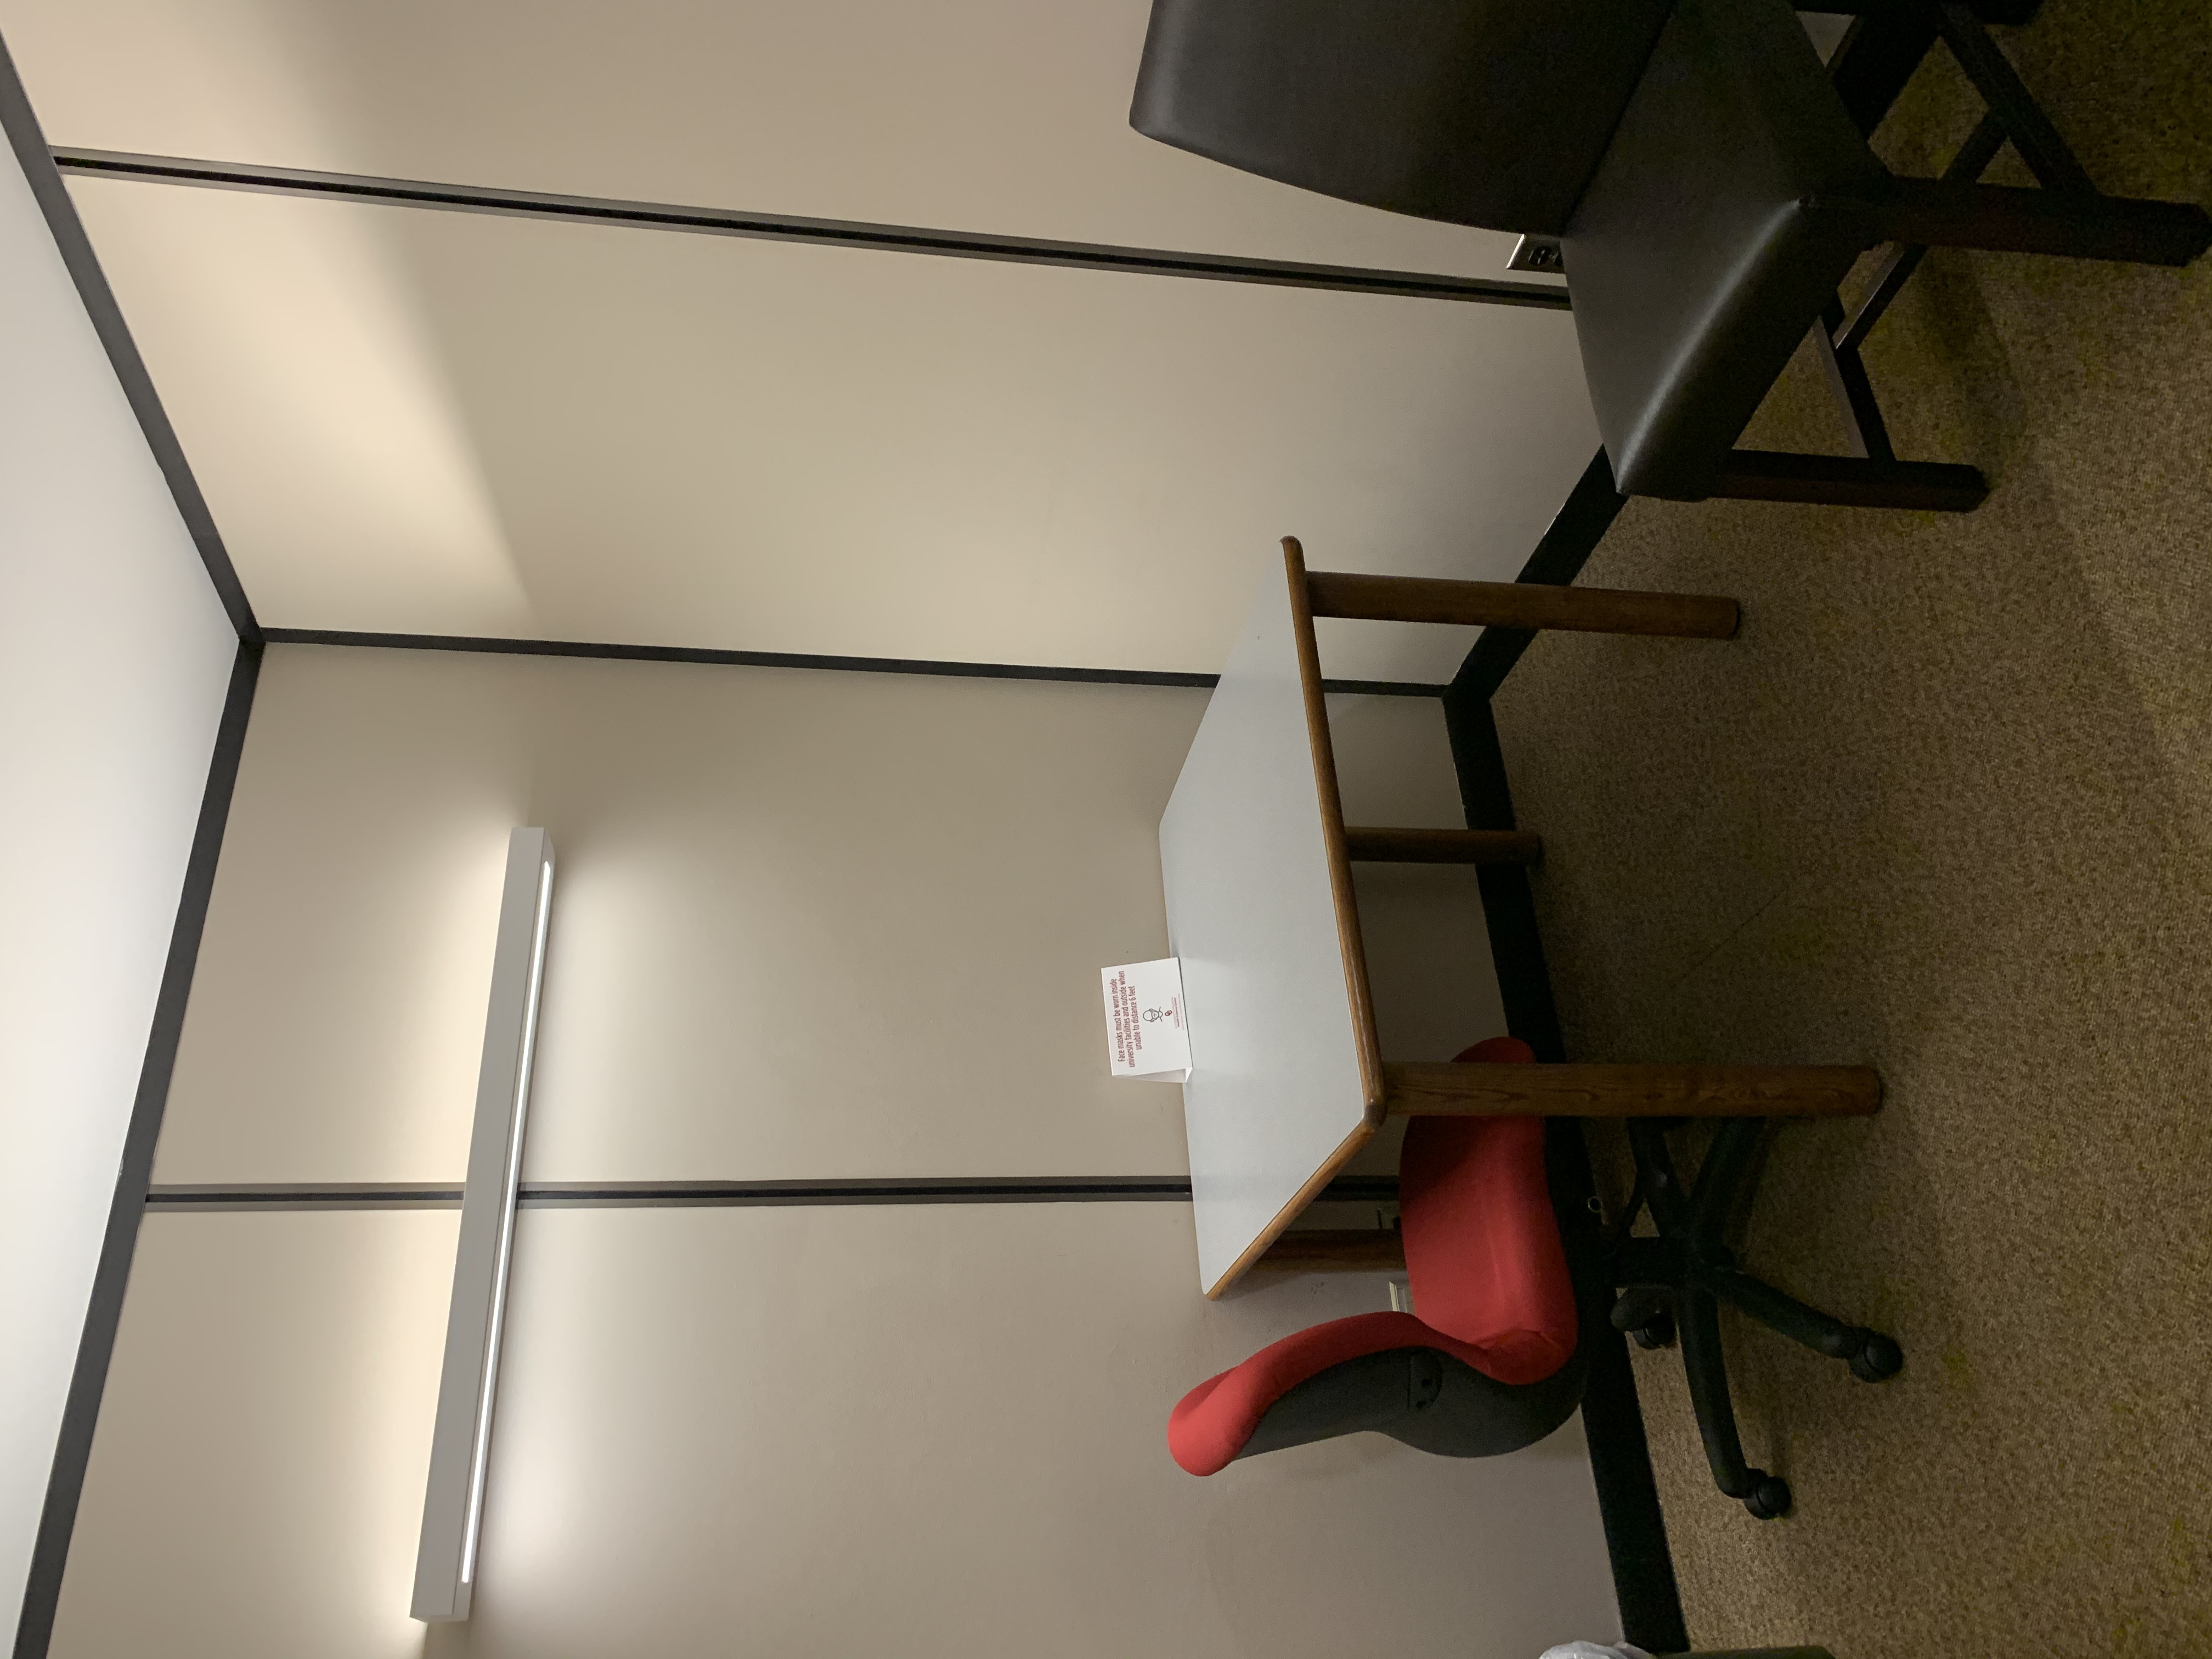 study room picture